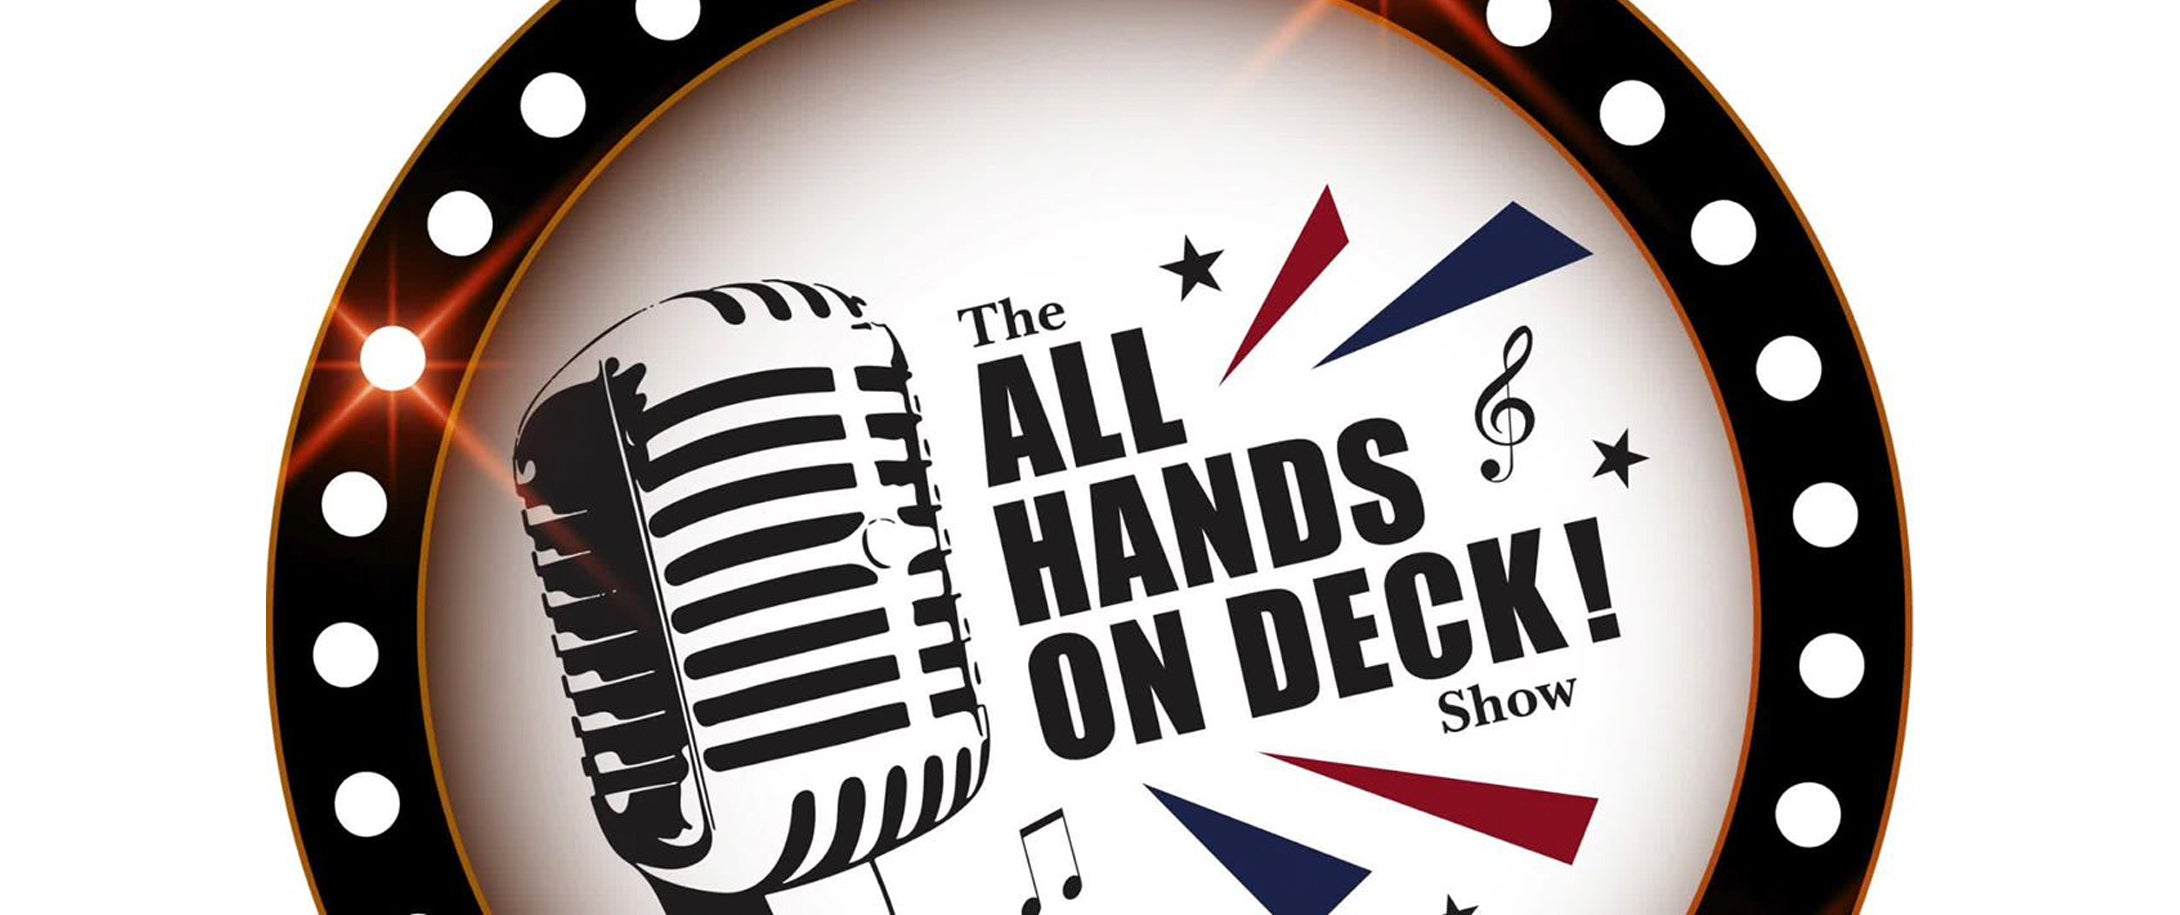 All Hands On Deck! Show - POSTPONED